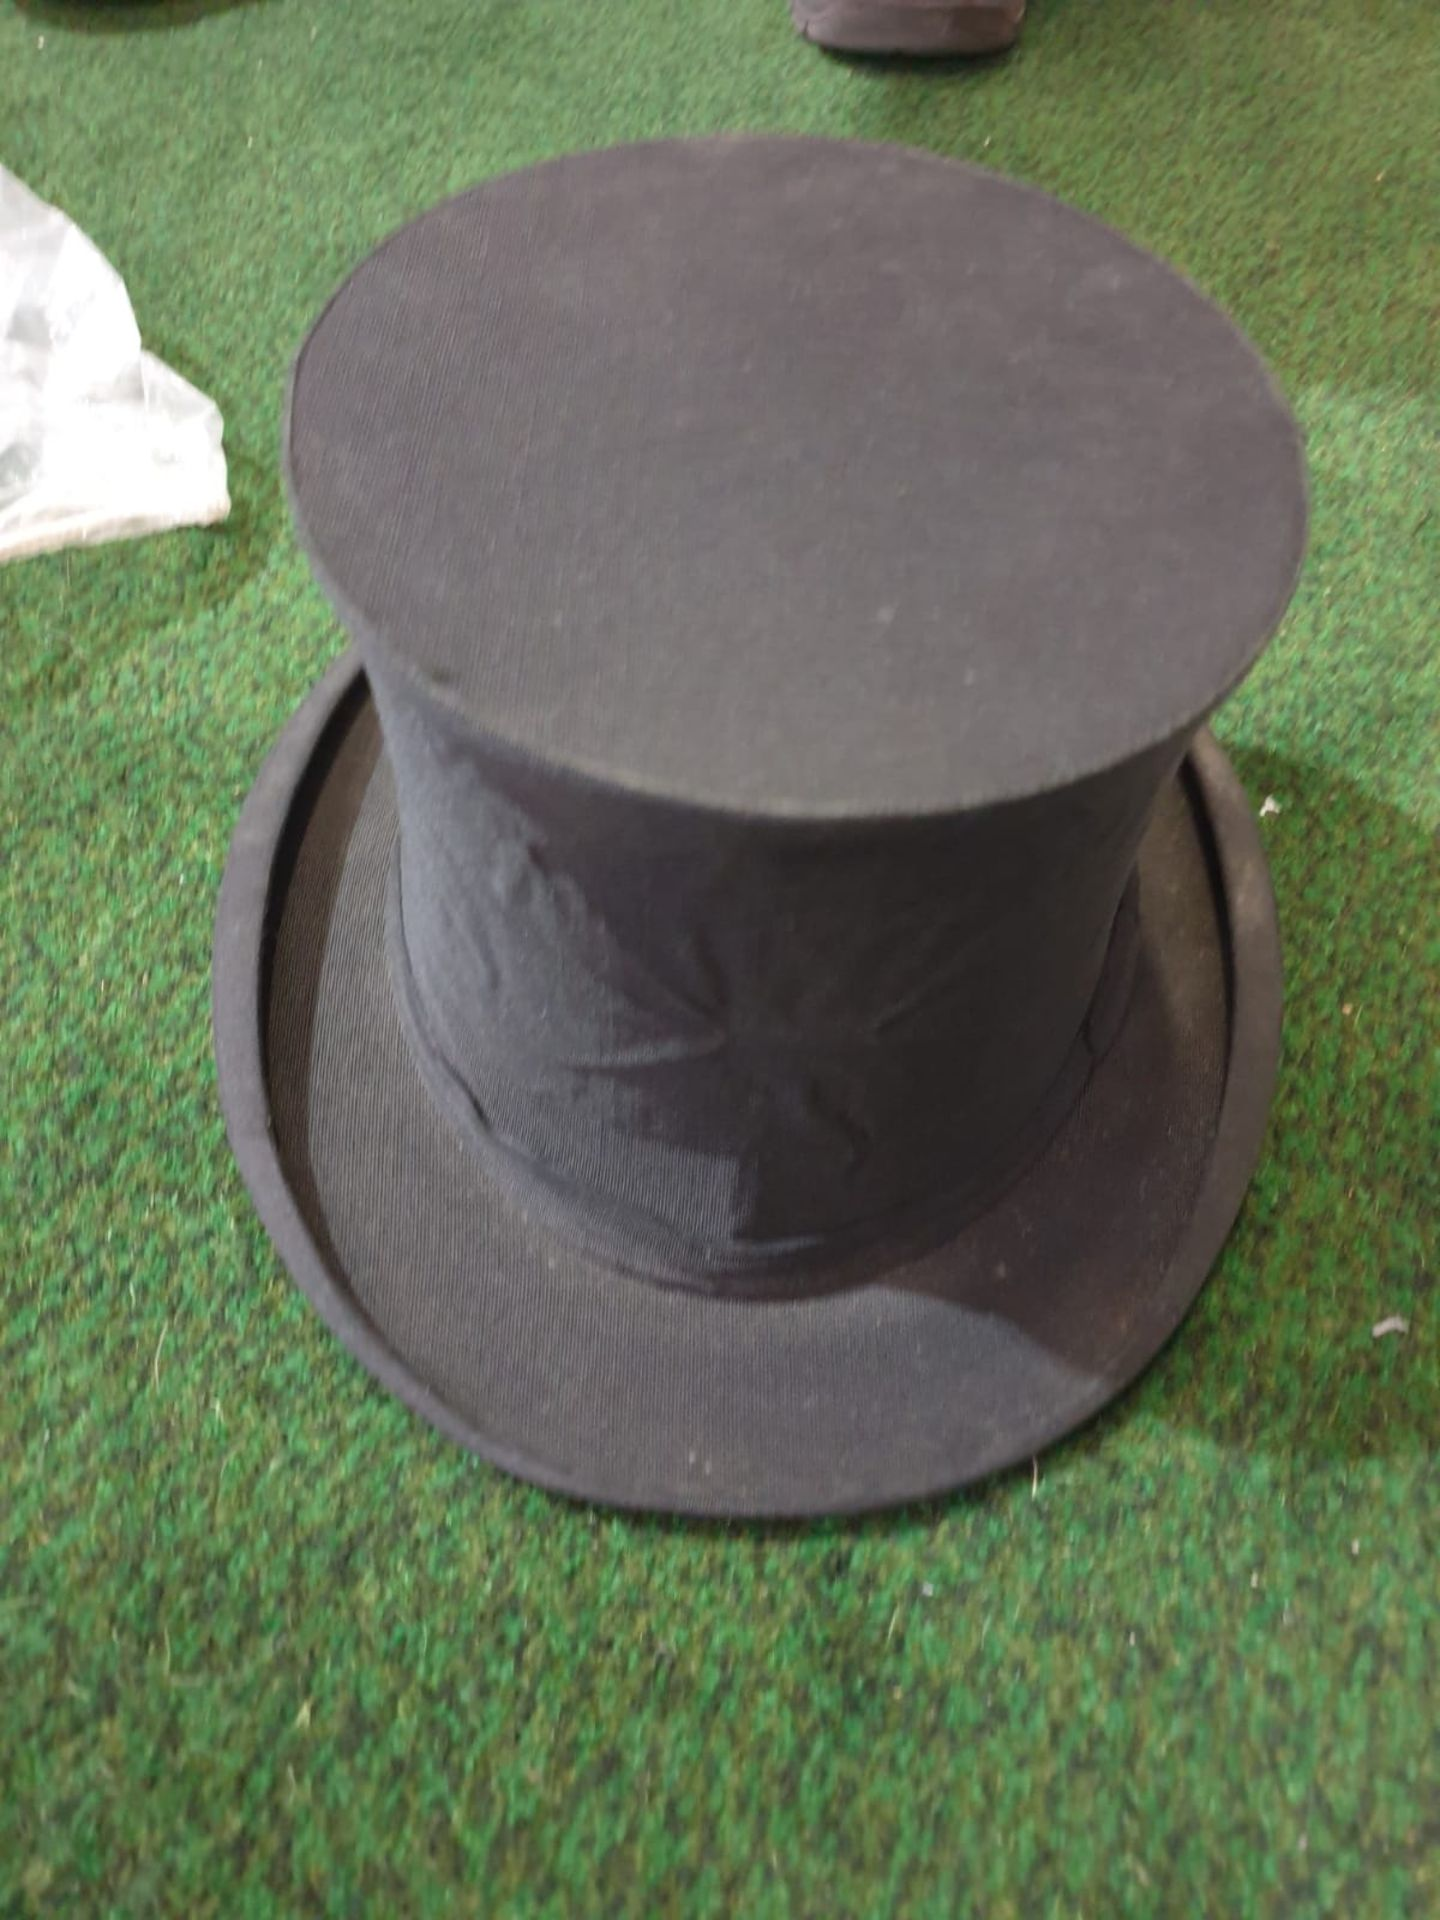 A Lock & Co London Naval peak cap and a Hunters Top hat by Harman & Son Hatters, 87 New Bond